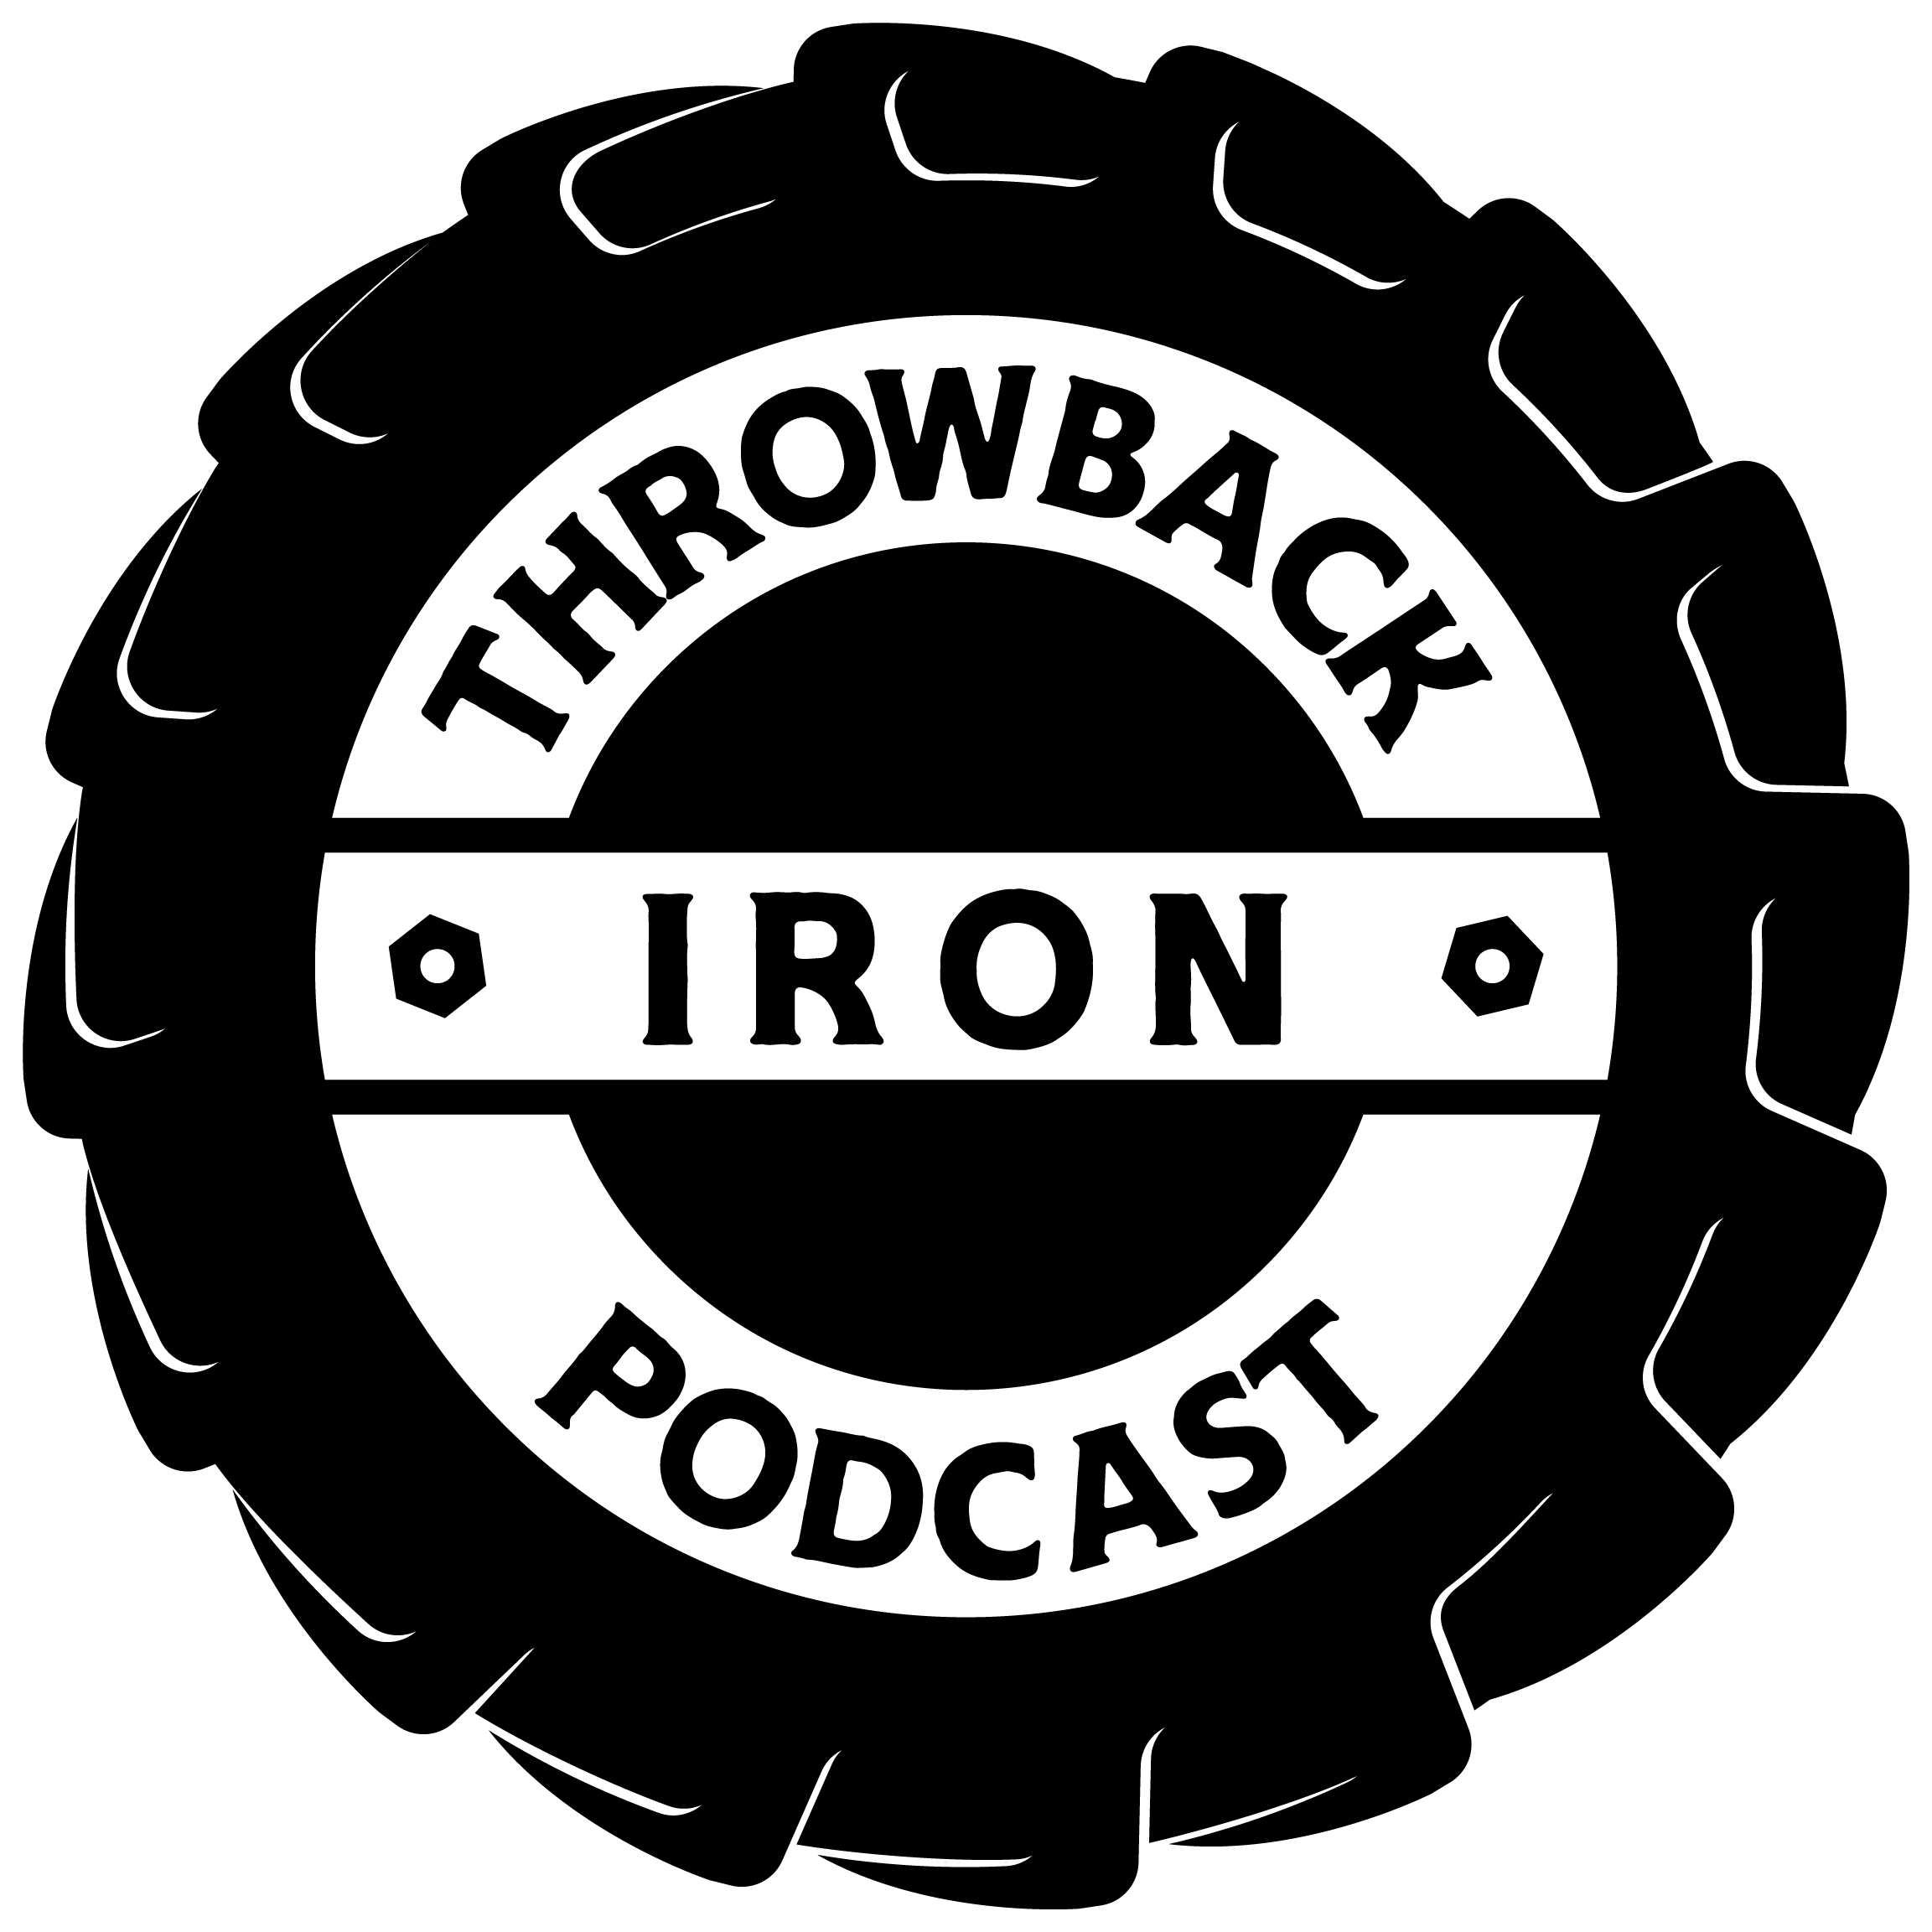 Throwback Iron Podcast